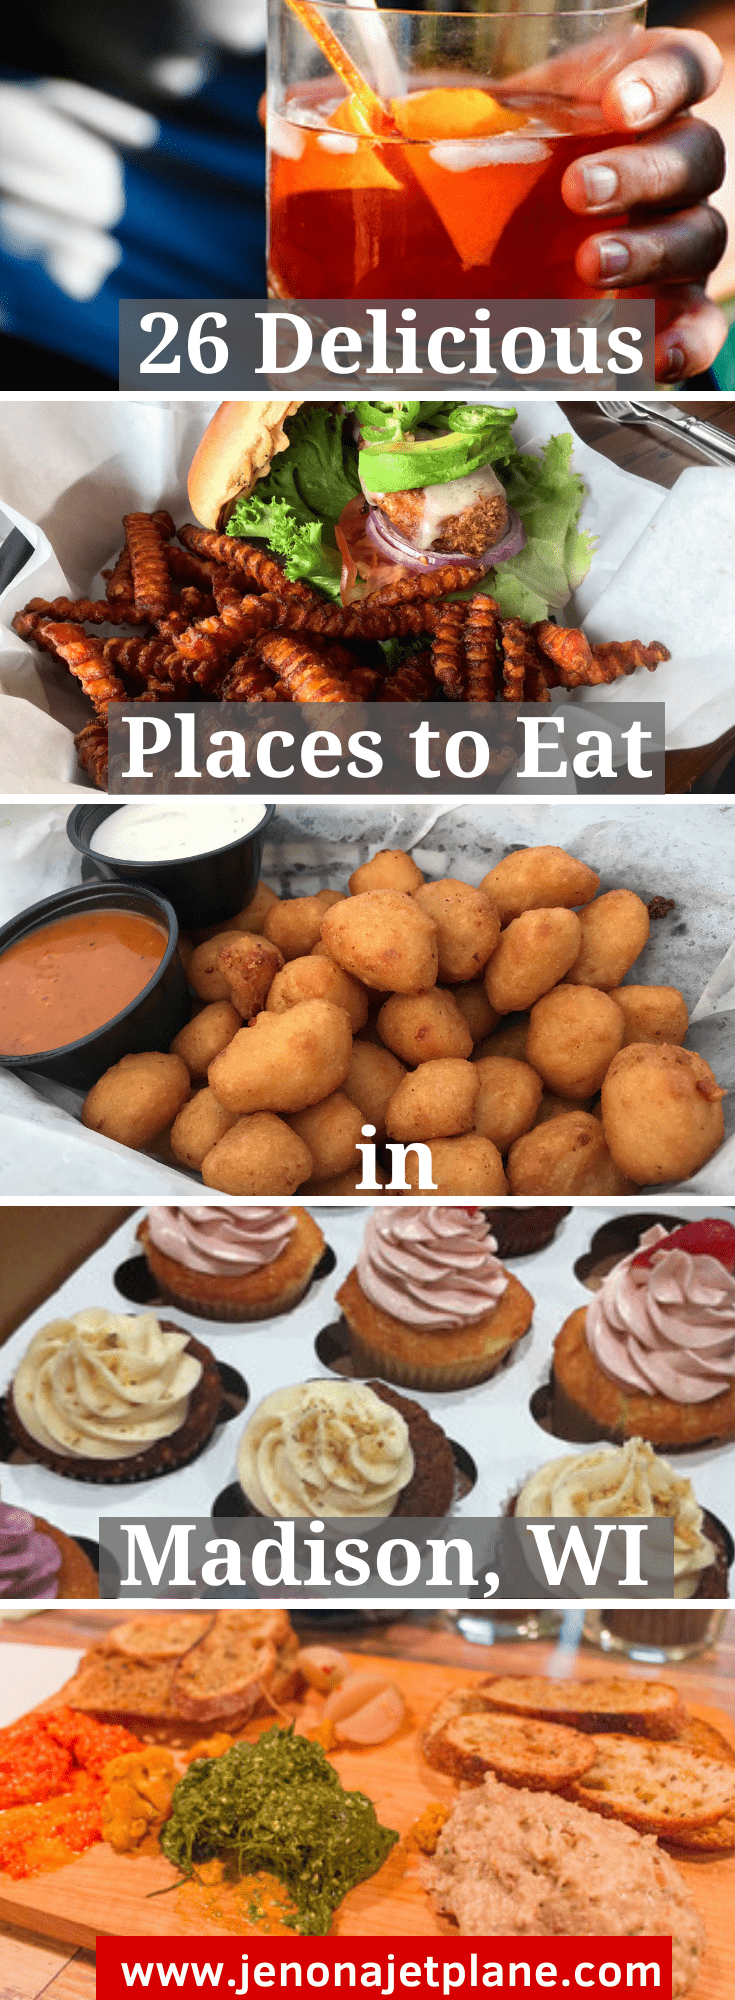 Looking for the best places to eat in Madison, Wisconsin? Whether you're going out for brunch or a fancy dinner, these tasty options will hit the spot!